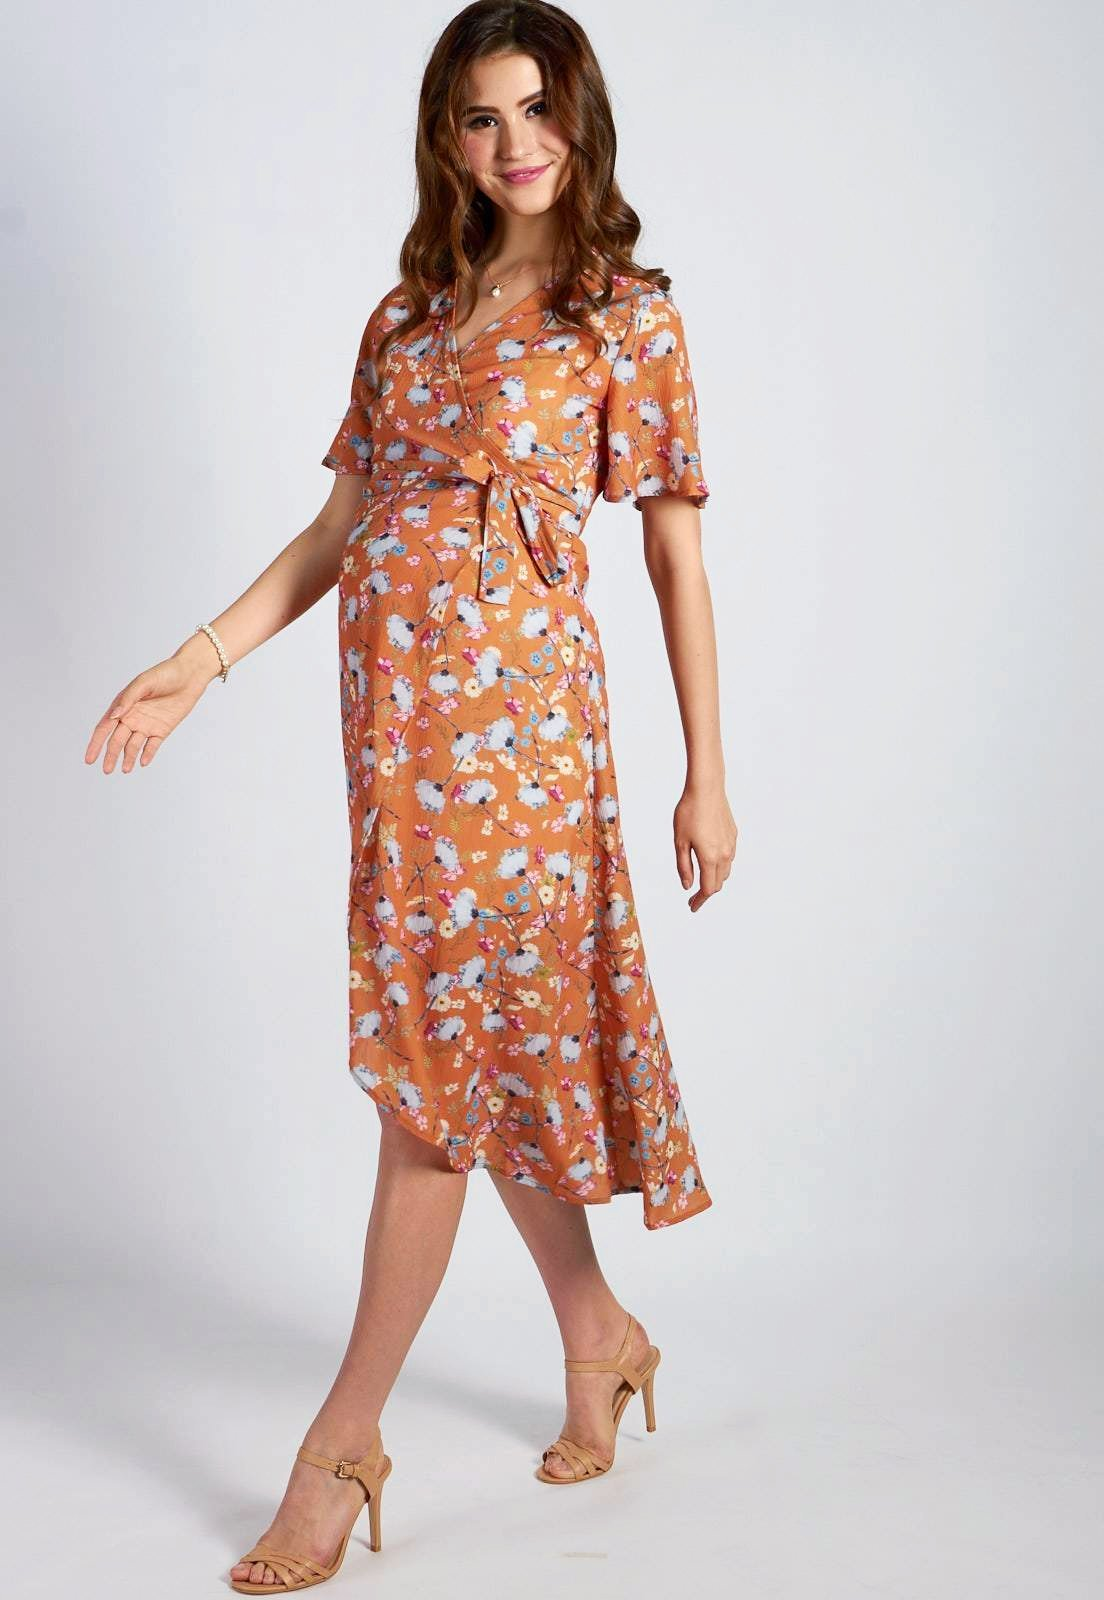 Mothercot Mustard Floral Nursing Wrap Dress  by JumpEatCry - Maternity and nursing wear